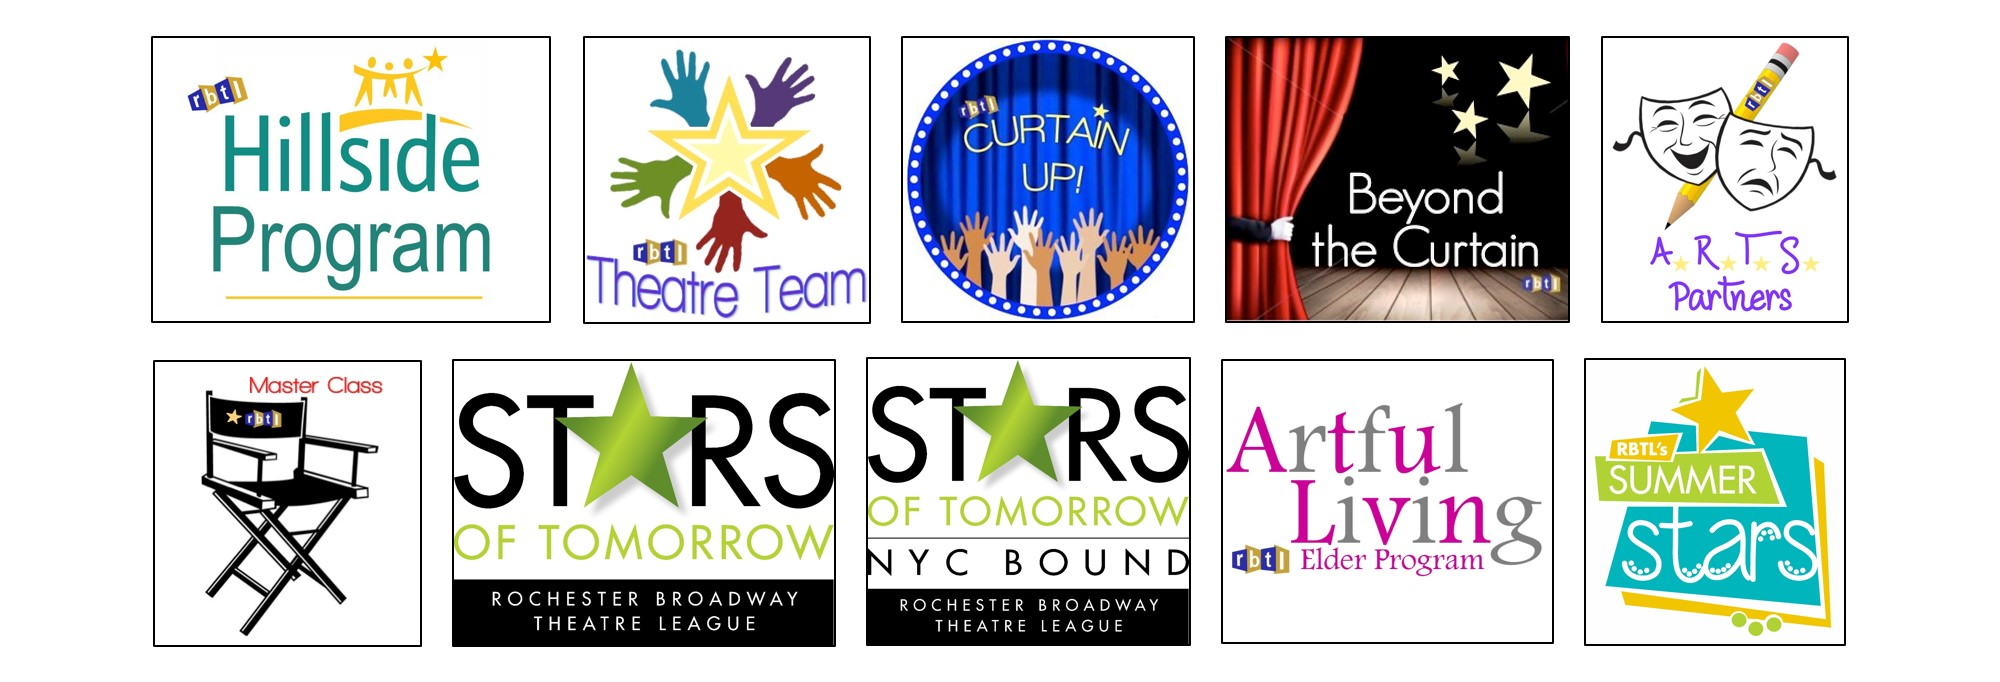 Rochester Broadway Theatre League: We Do More Than Entertain   